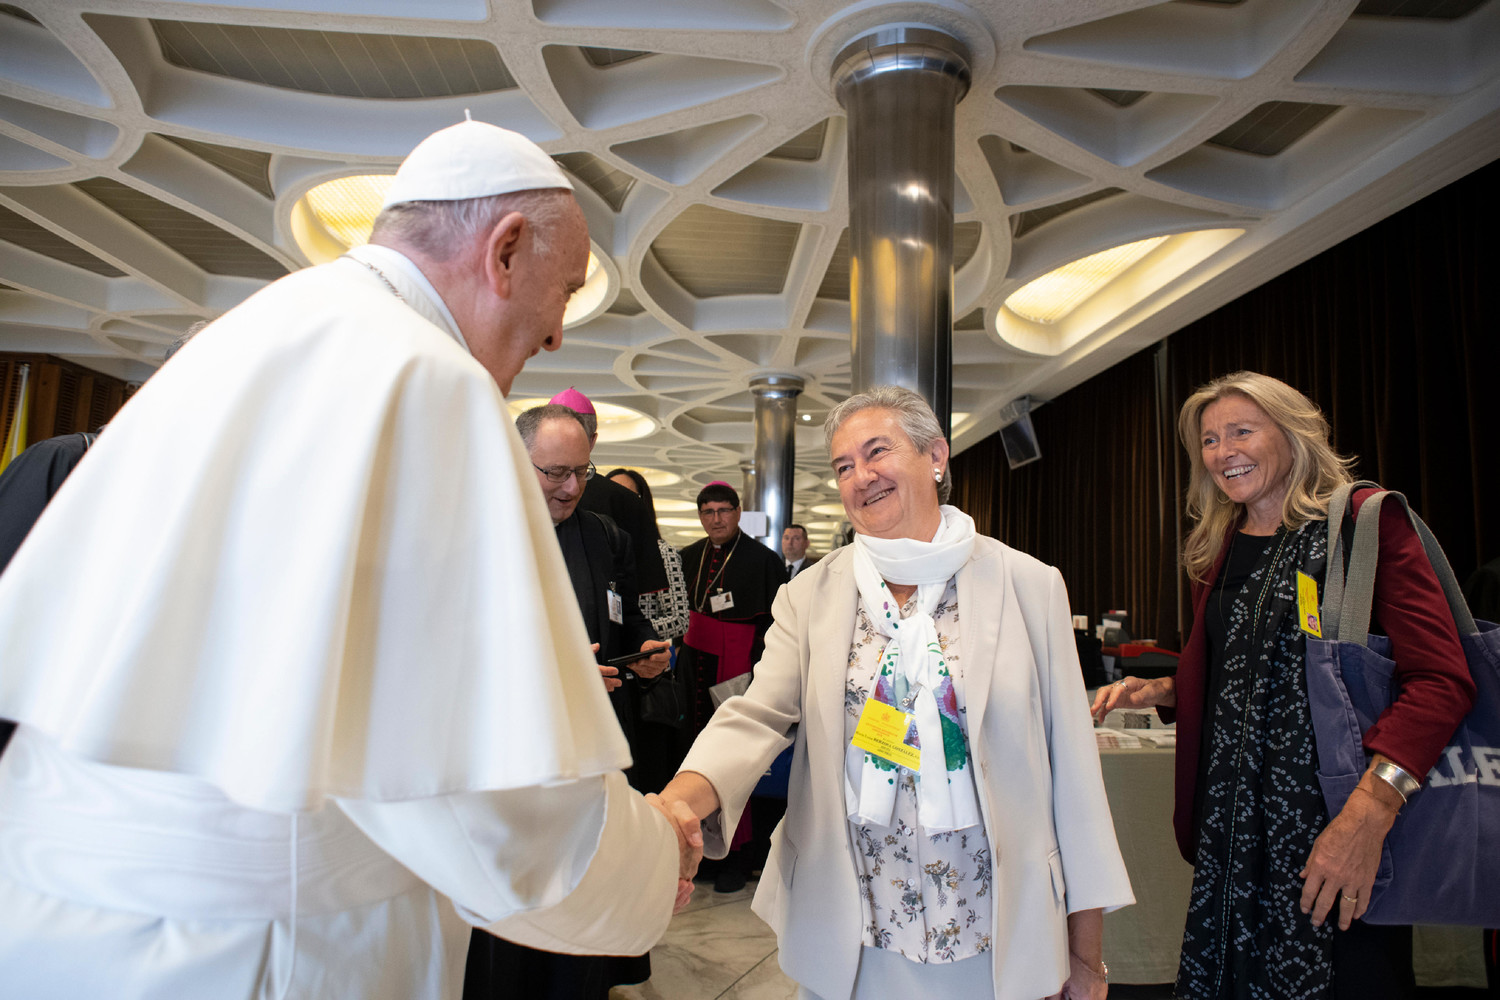 Pope Francis greets Sister Maria Luisa Berzosa Gonzalez before a session of the Synod of Bishops on young people, the faith and vocational discernment at the Vatican Oct. 16. Also pictured is Chiara Giaccardi, an Italian professor of sociology.